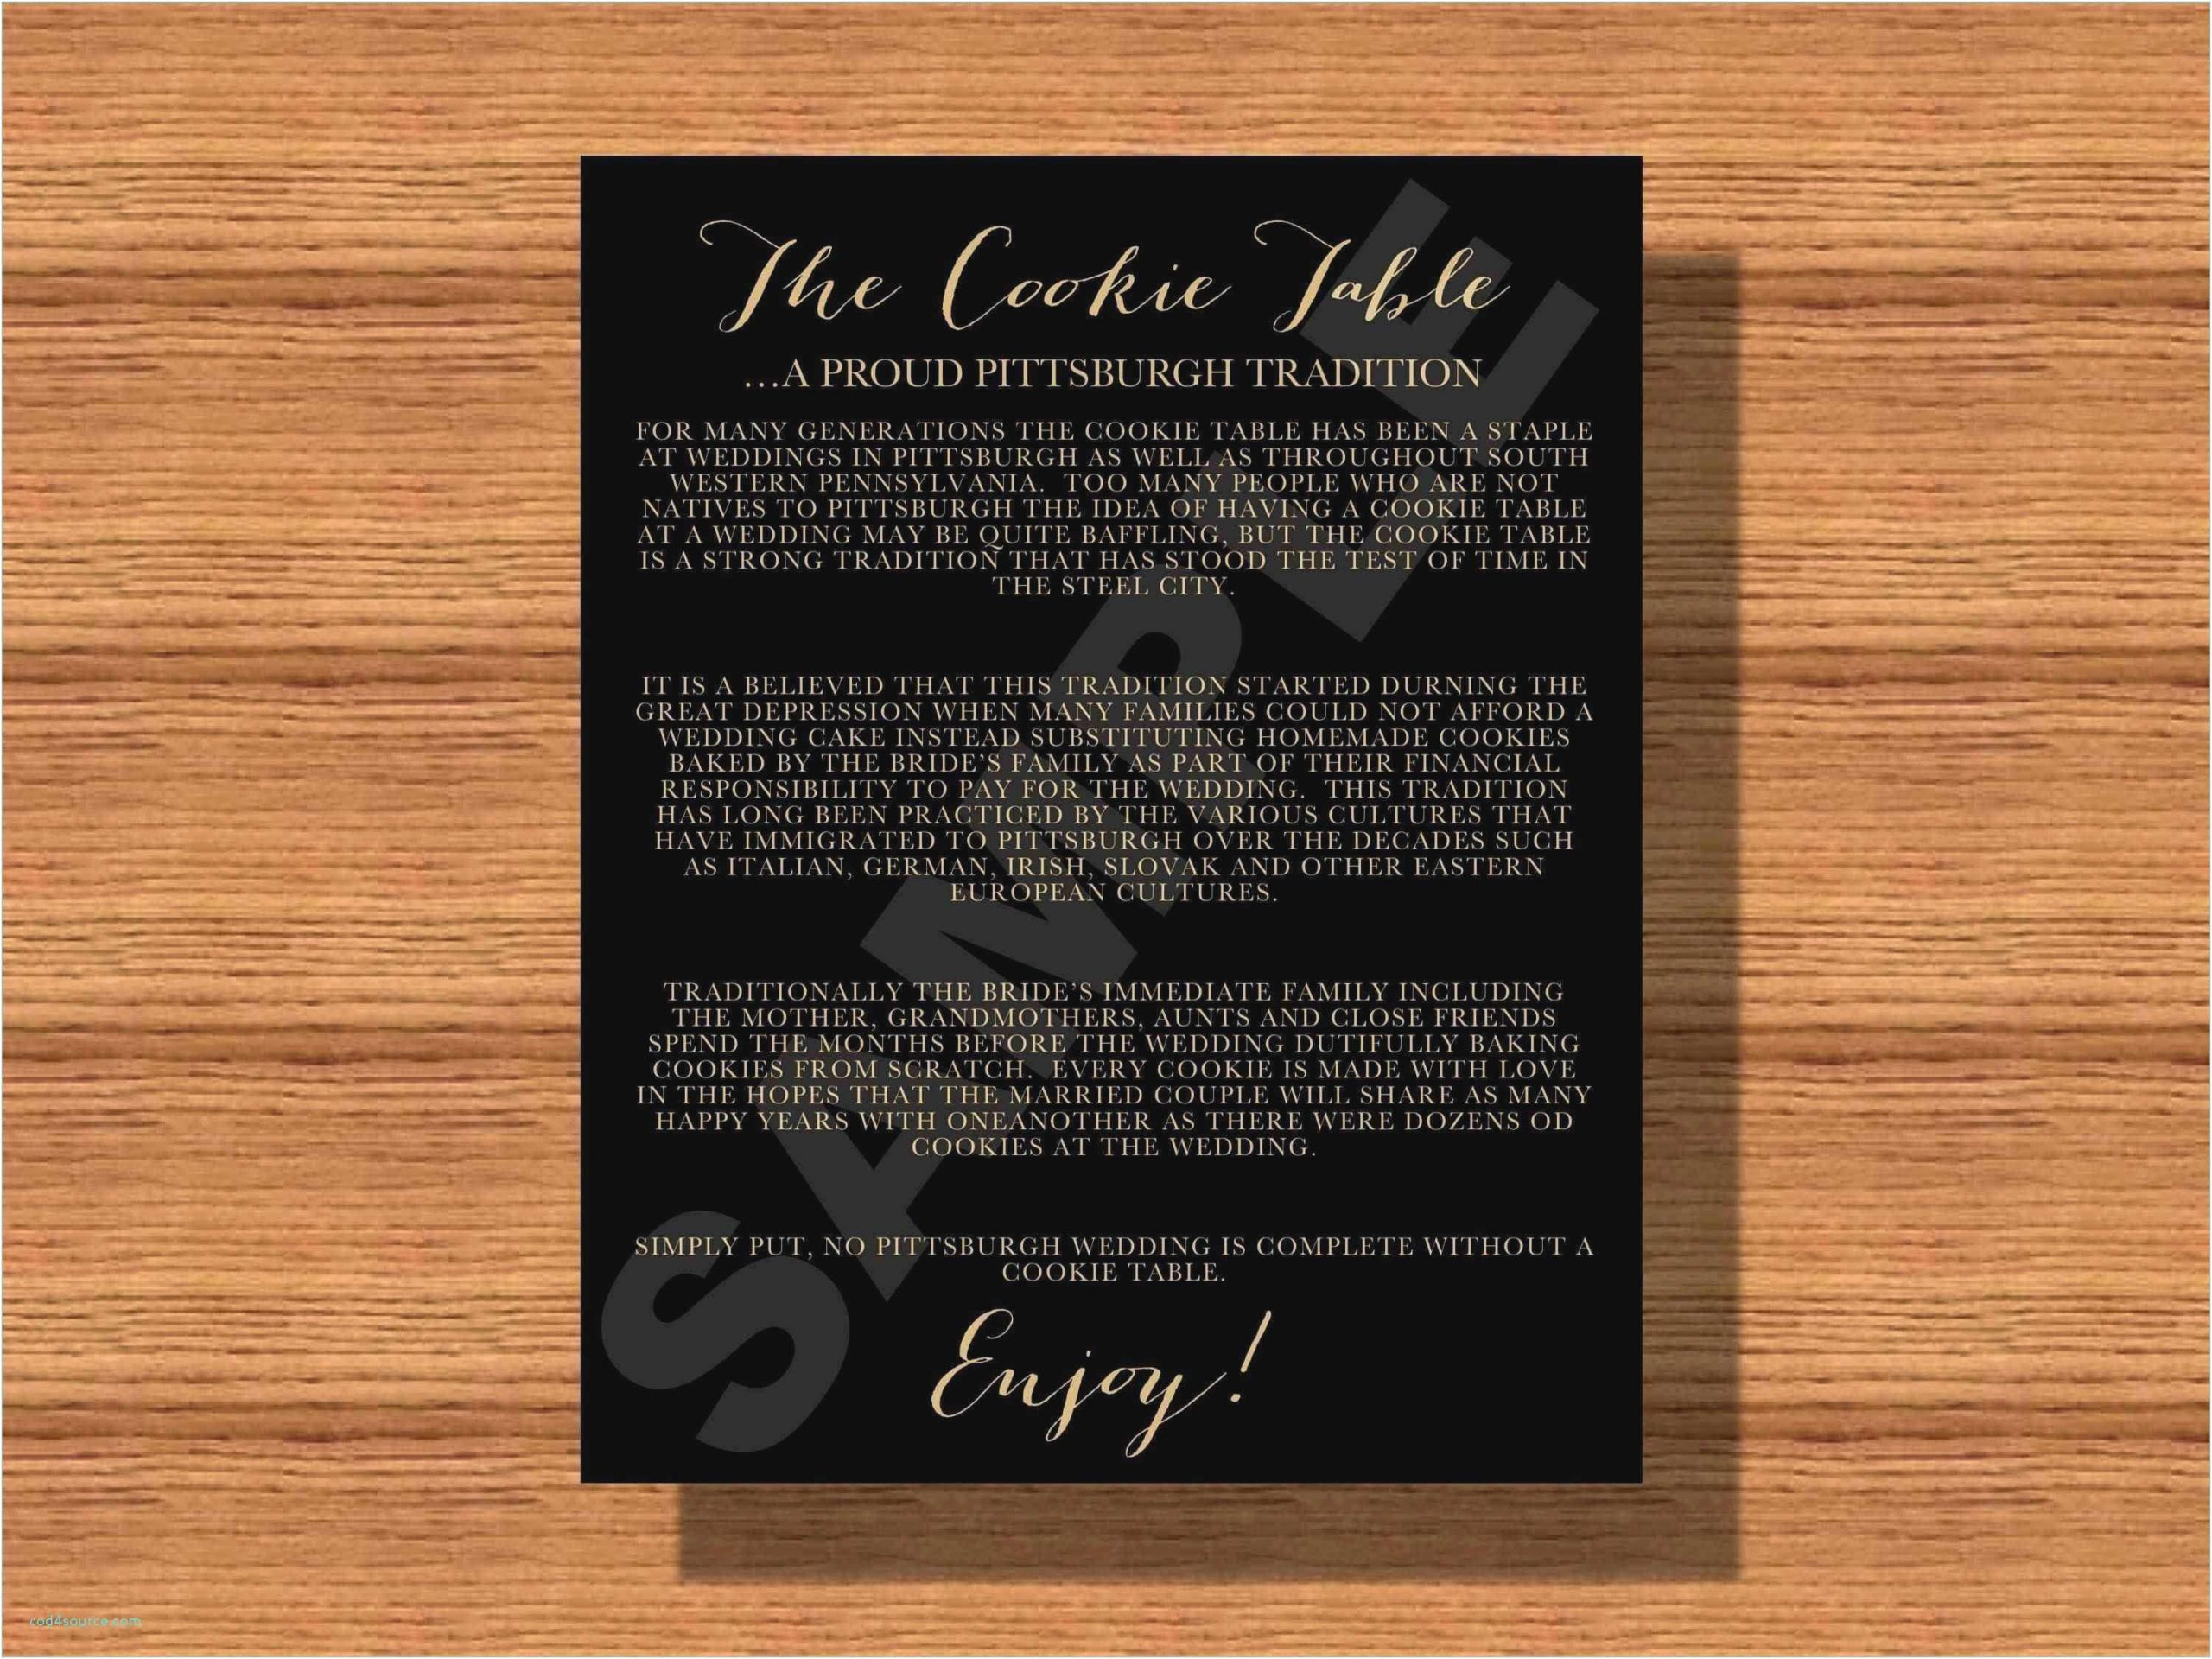 free 57 get well card template 2019 of business thank you cards templates of business thank you cards templates jpg